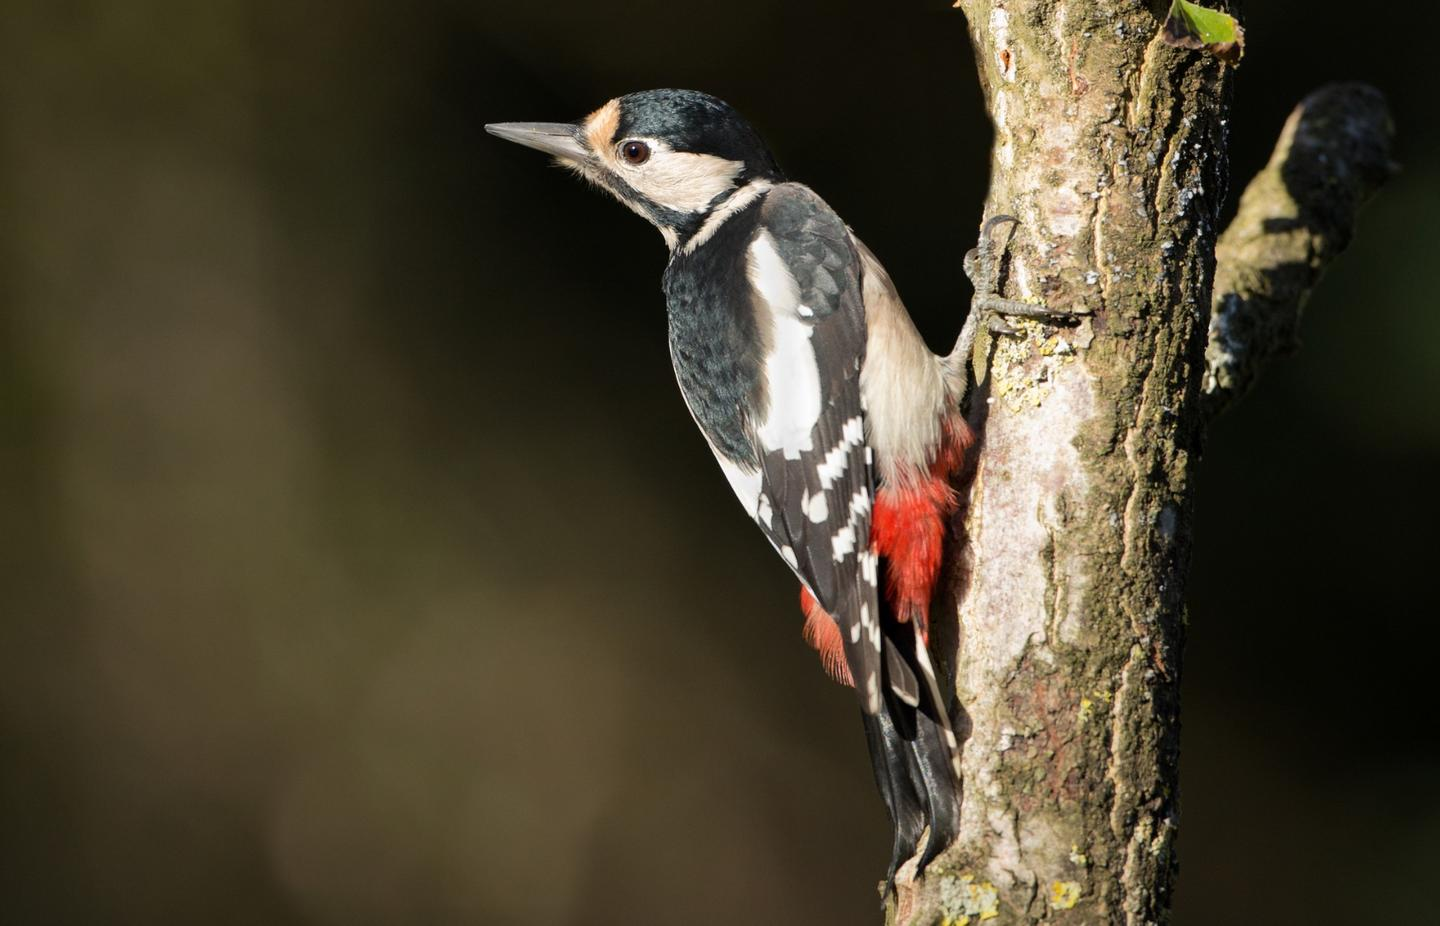 A new study has found a build-up of tau proteins in the brains of woodpeckers – a marker normally associated with brain damage